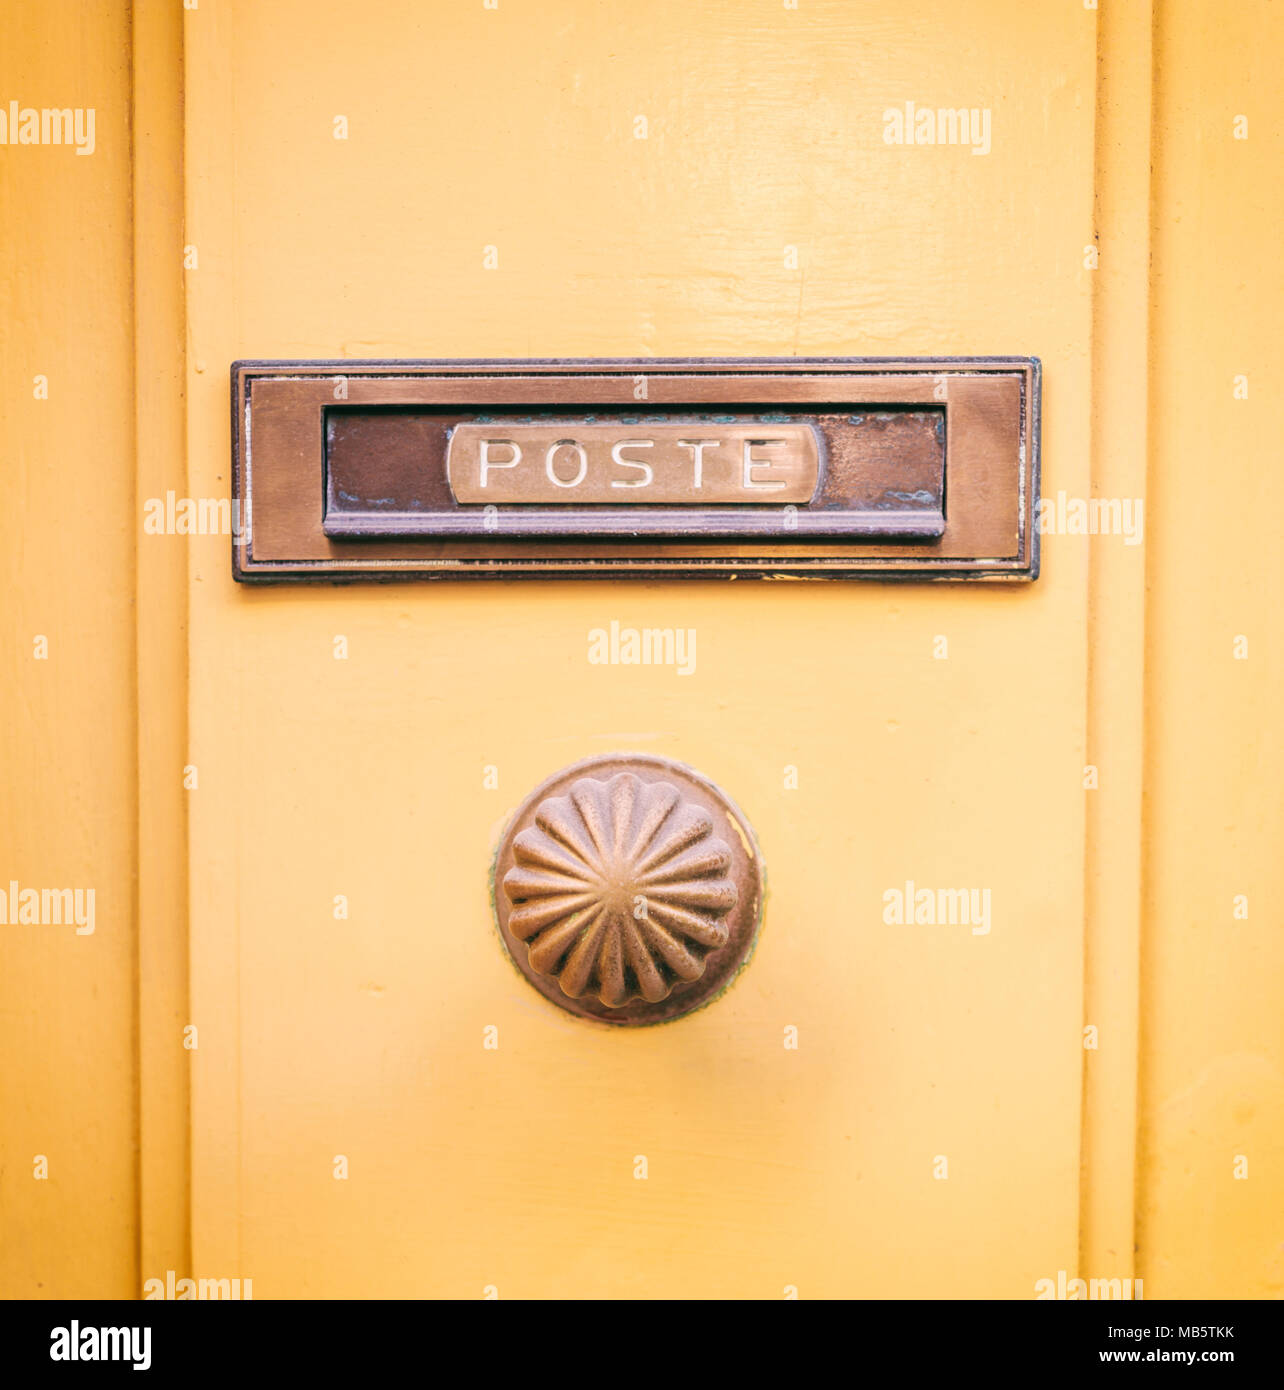 Old brass mail letter box and door knob on a yellow front door, text ...